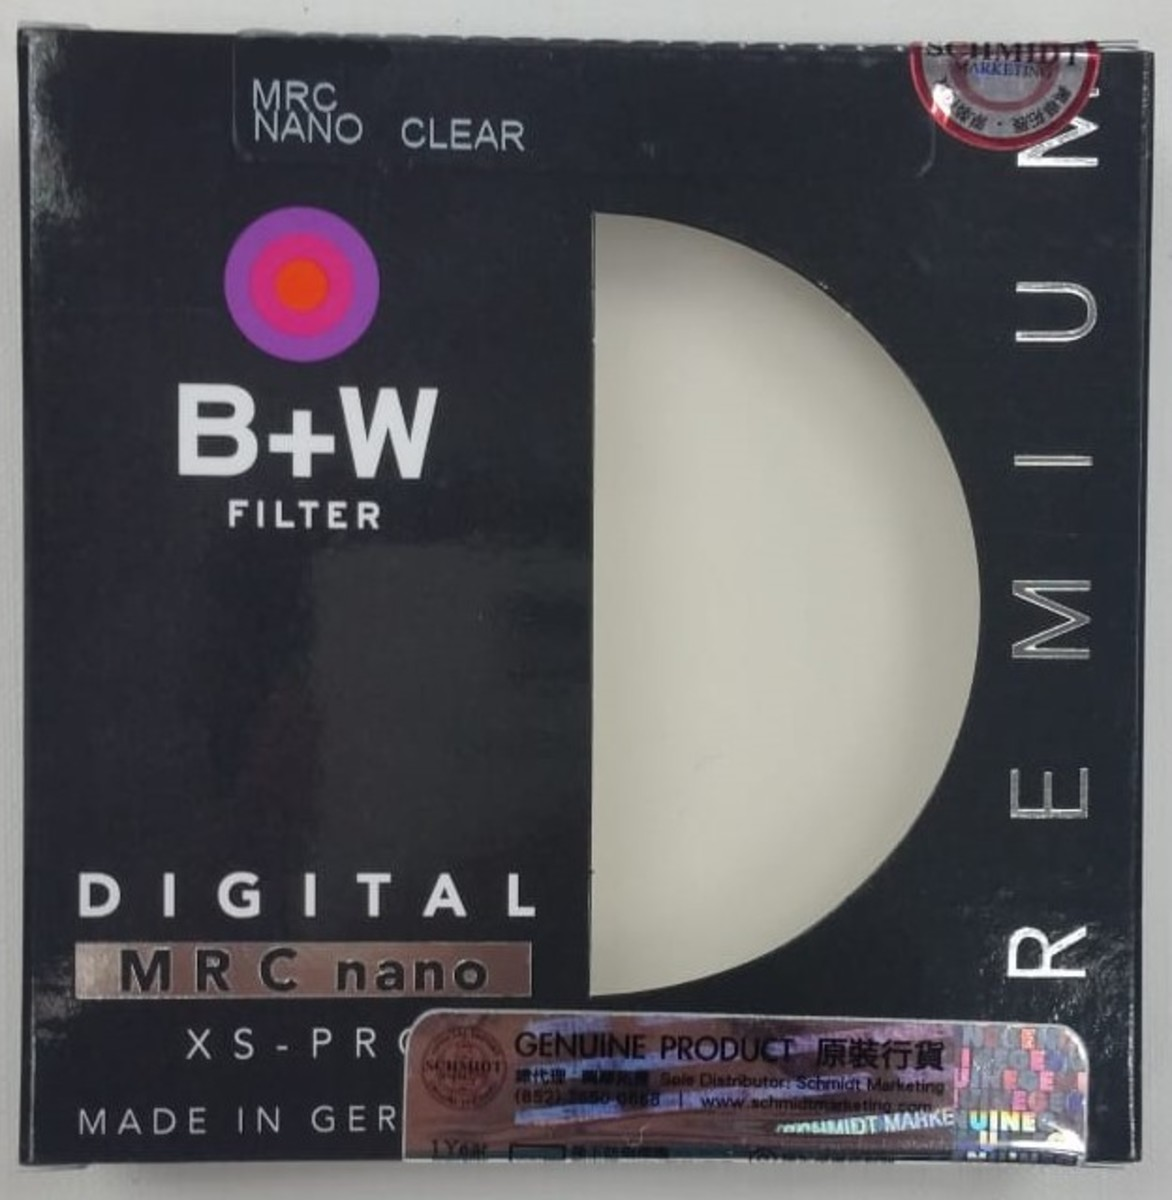 58mm XS-Pro Digital 007 Clear filter MRC nano Protector頂級保護鏡